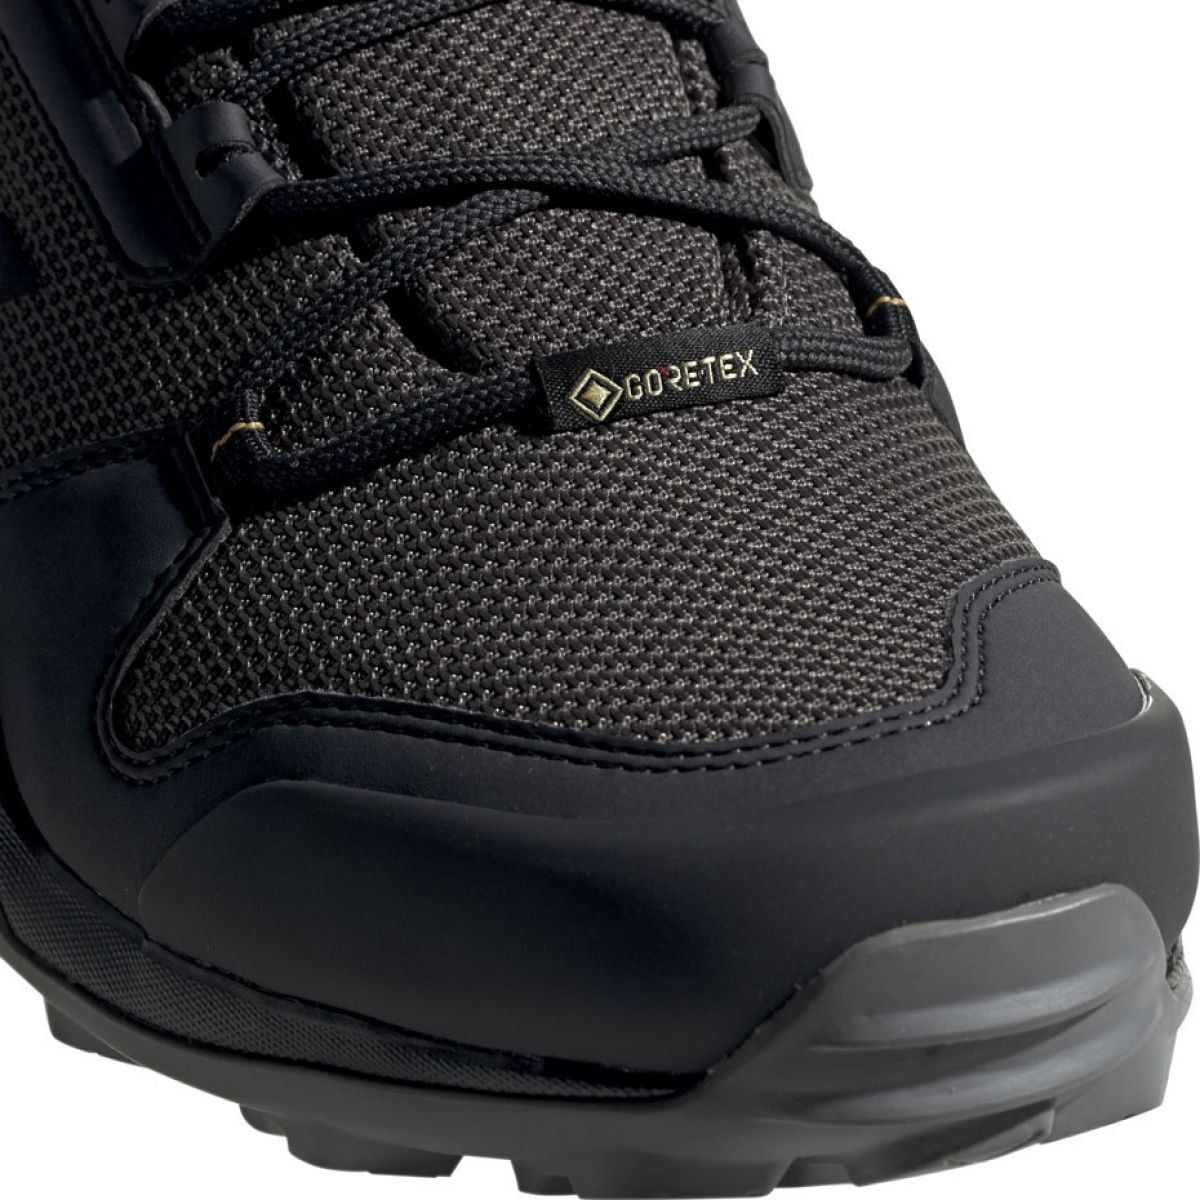 7e5d743 adidas terrex ax3 mid gtx trekking shoes men